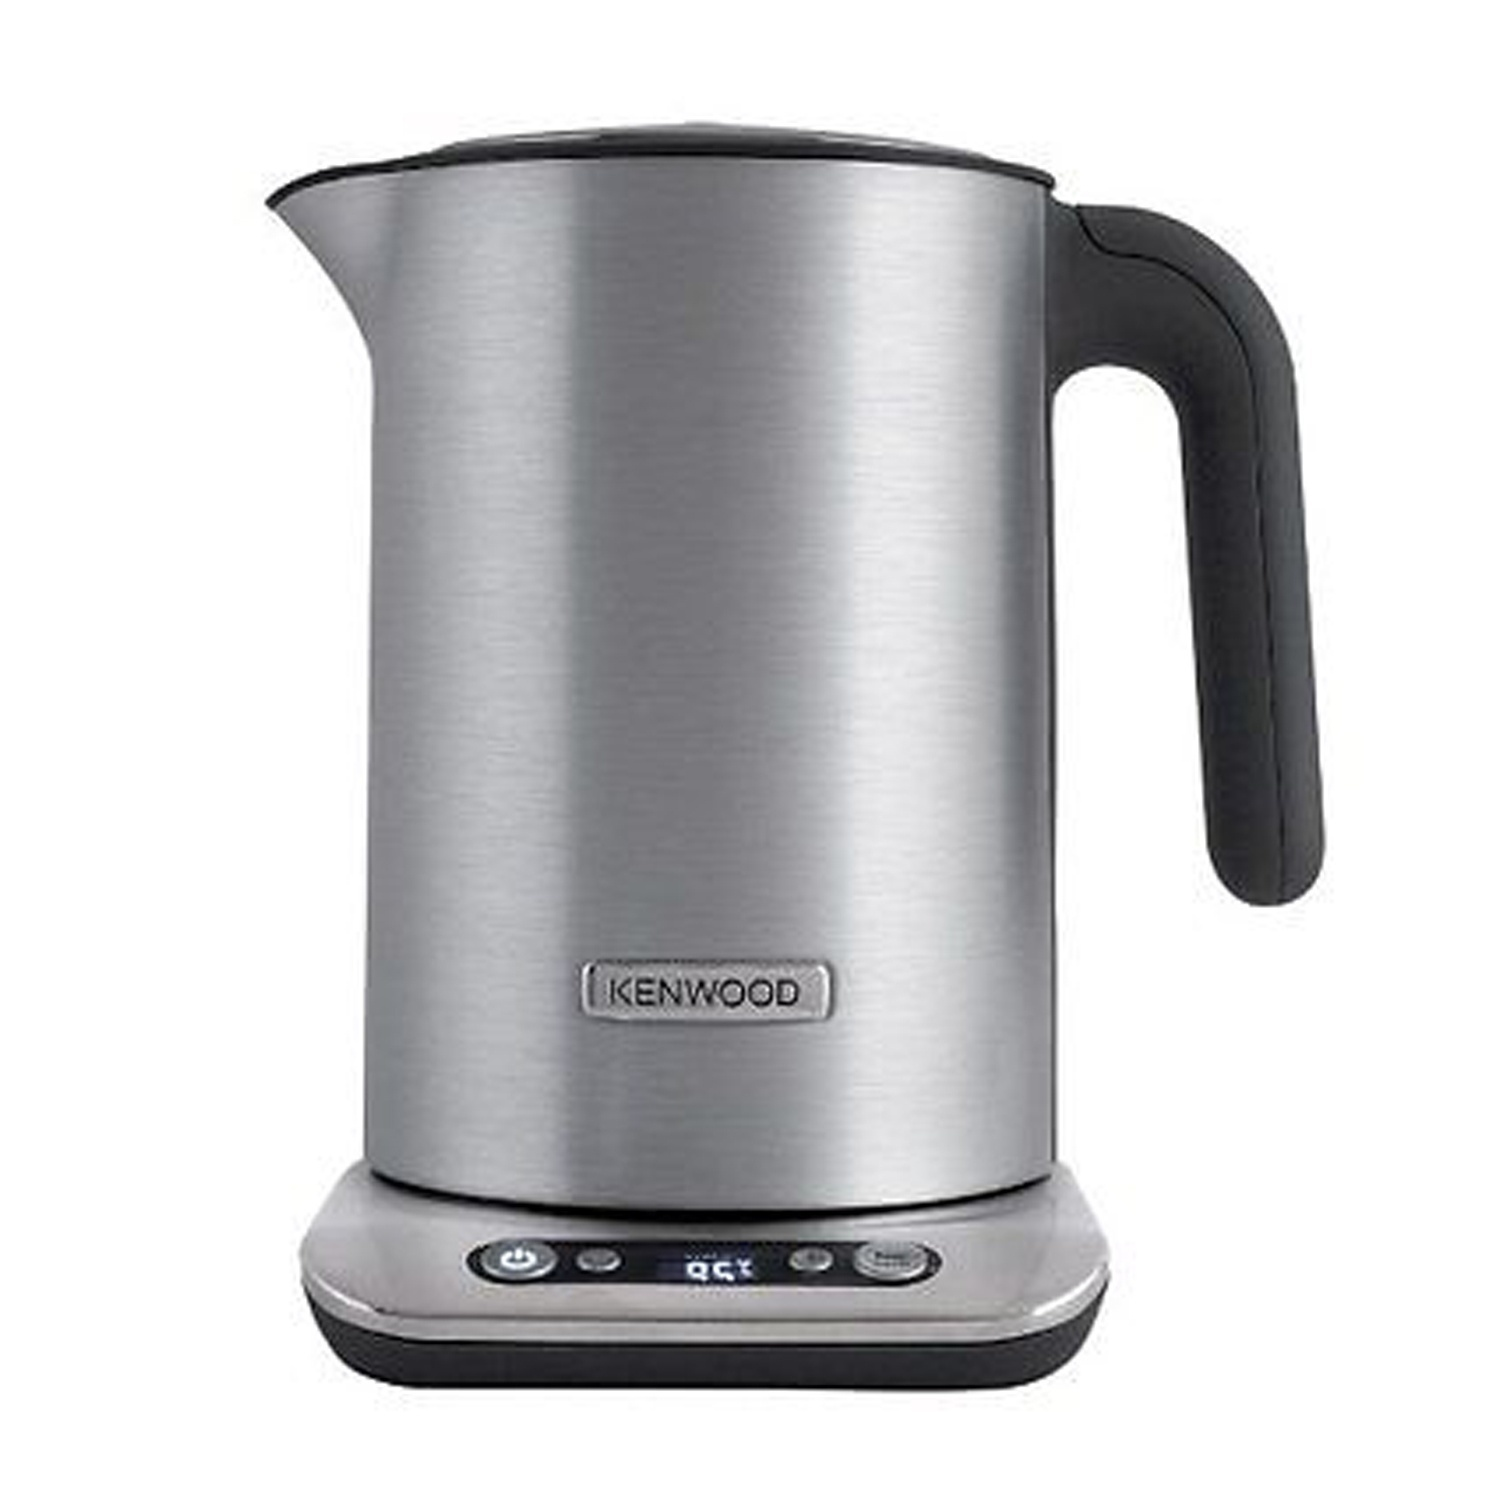 Kenwood SJM610 Persona Collection Electric Kettle